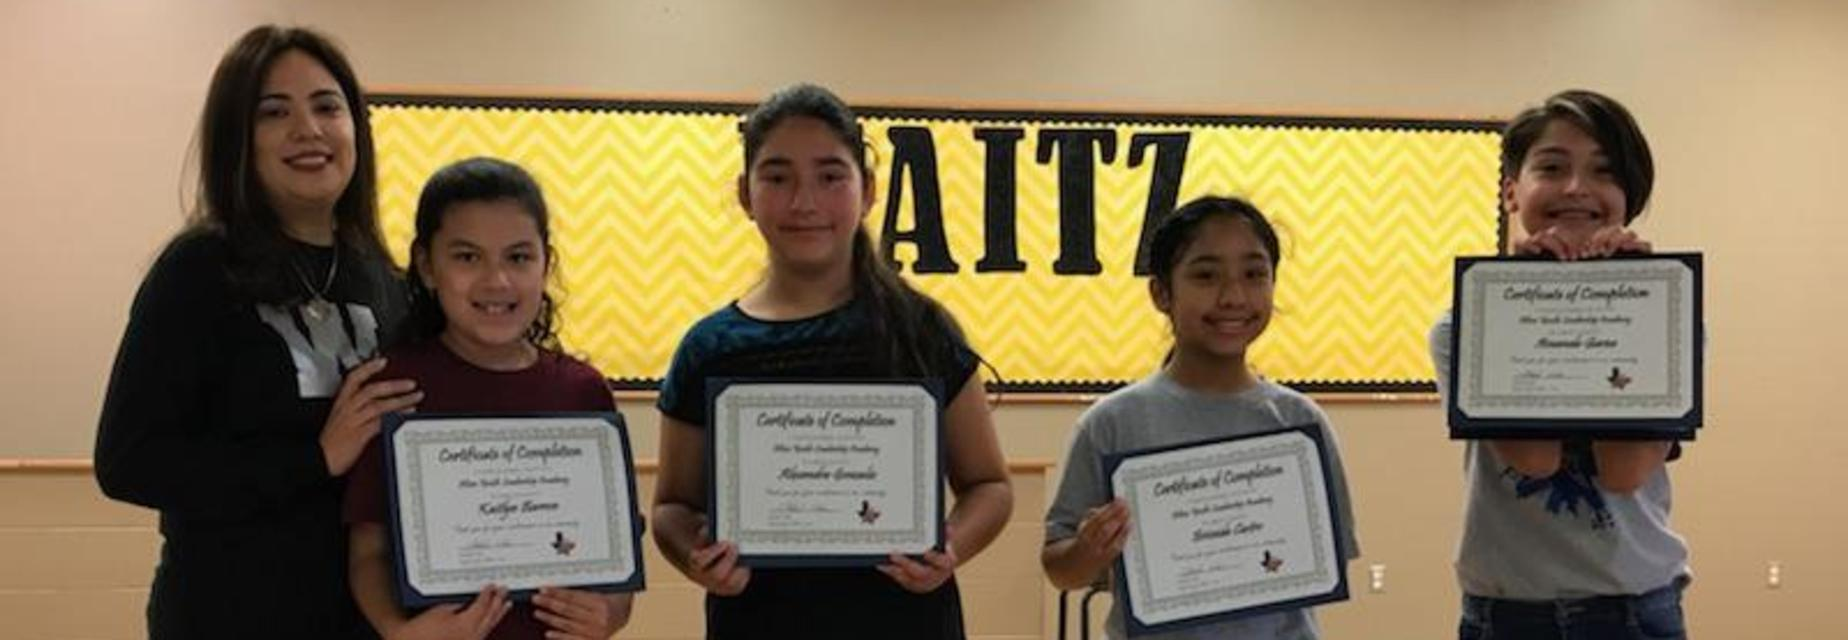 Alton Youth Leadership Academy participants receiving certificate